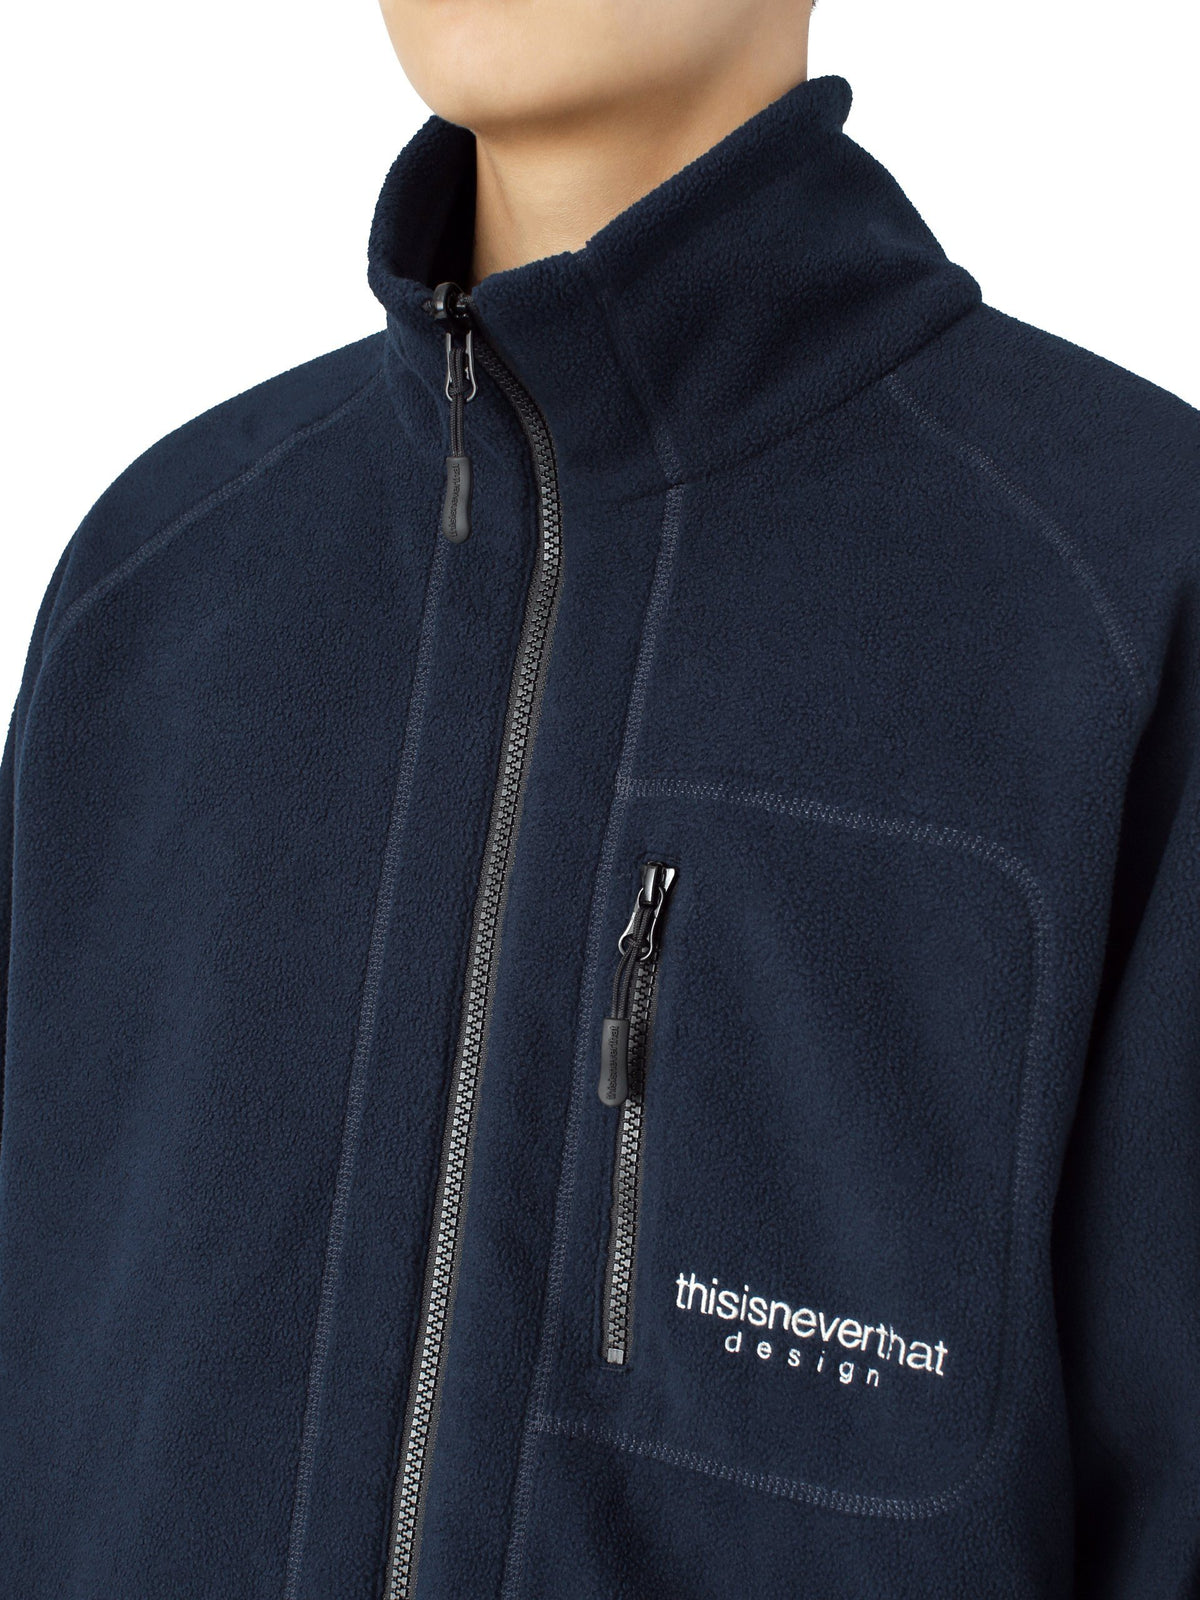 GORE-TEX® INFINIUM™ Fleece Jacket - thisisneverthat